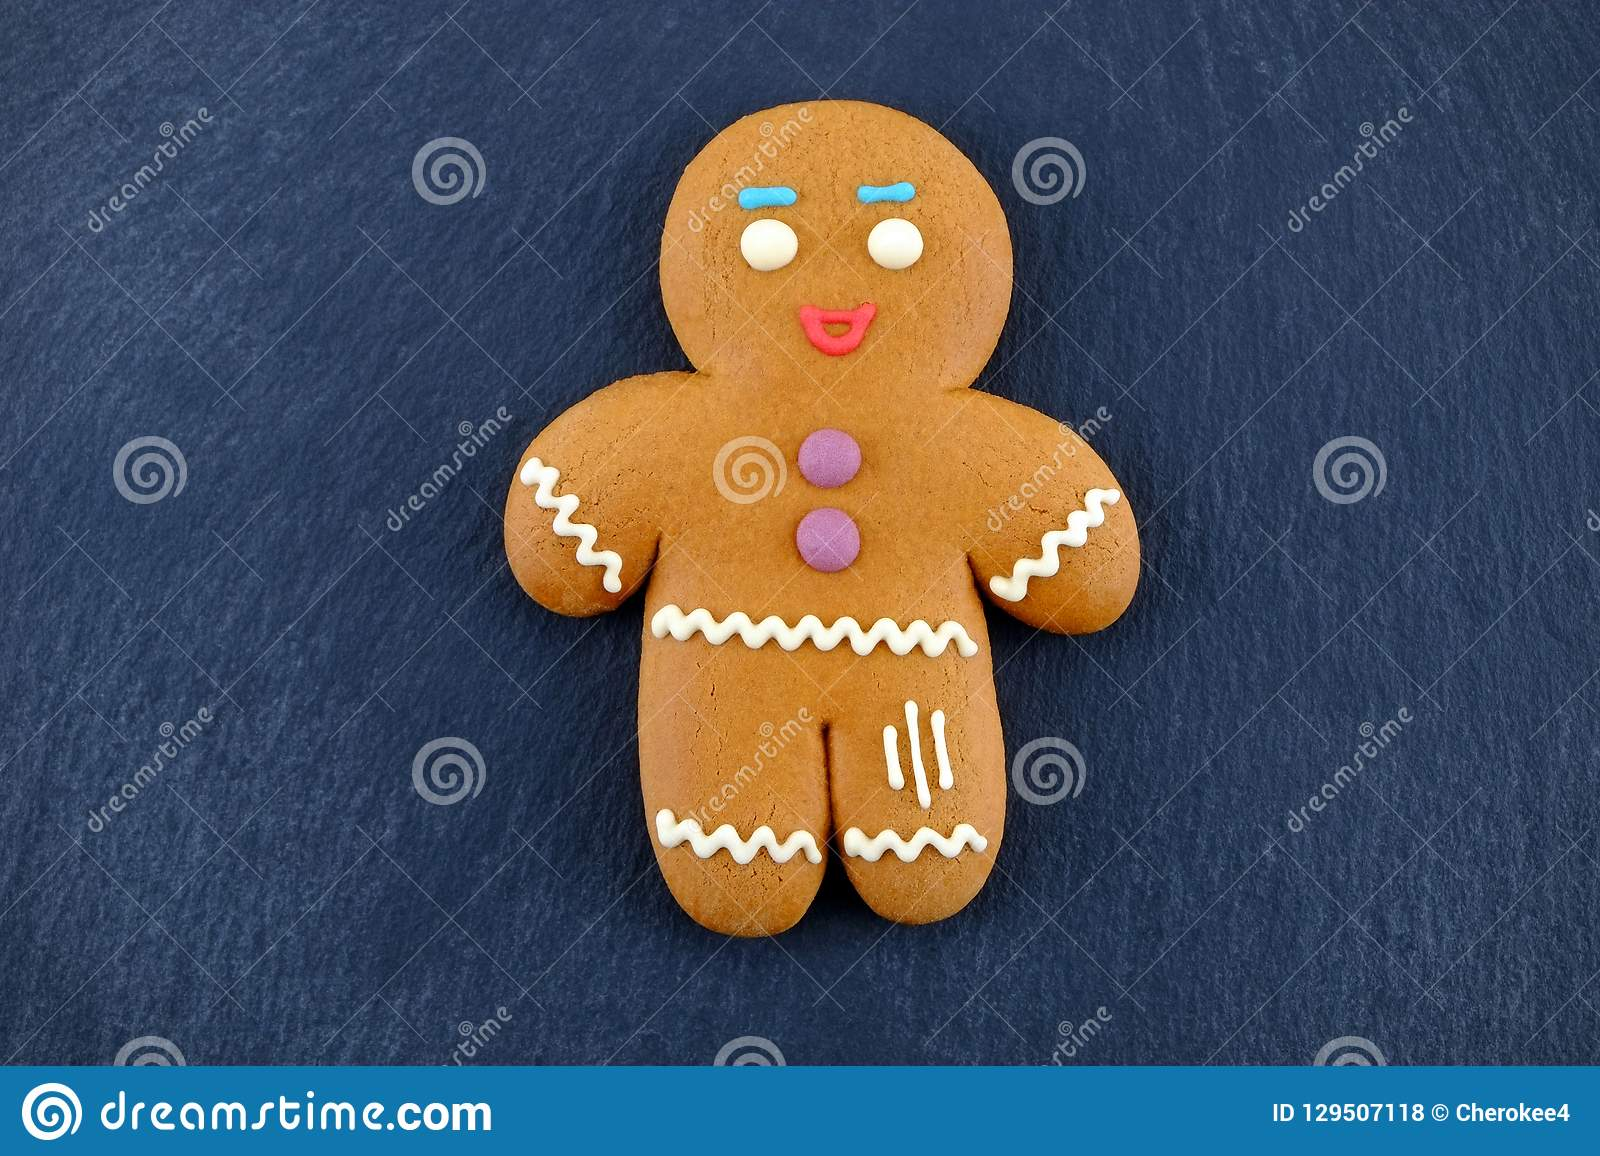 Gingerbread Man on dark background. Christmas or New Year composition